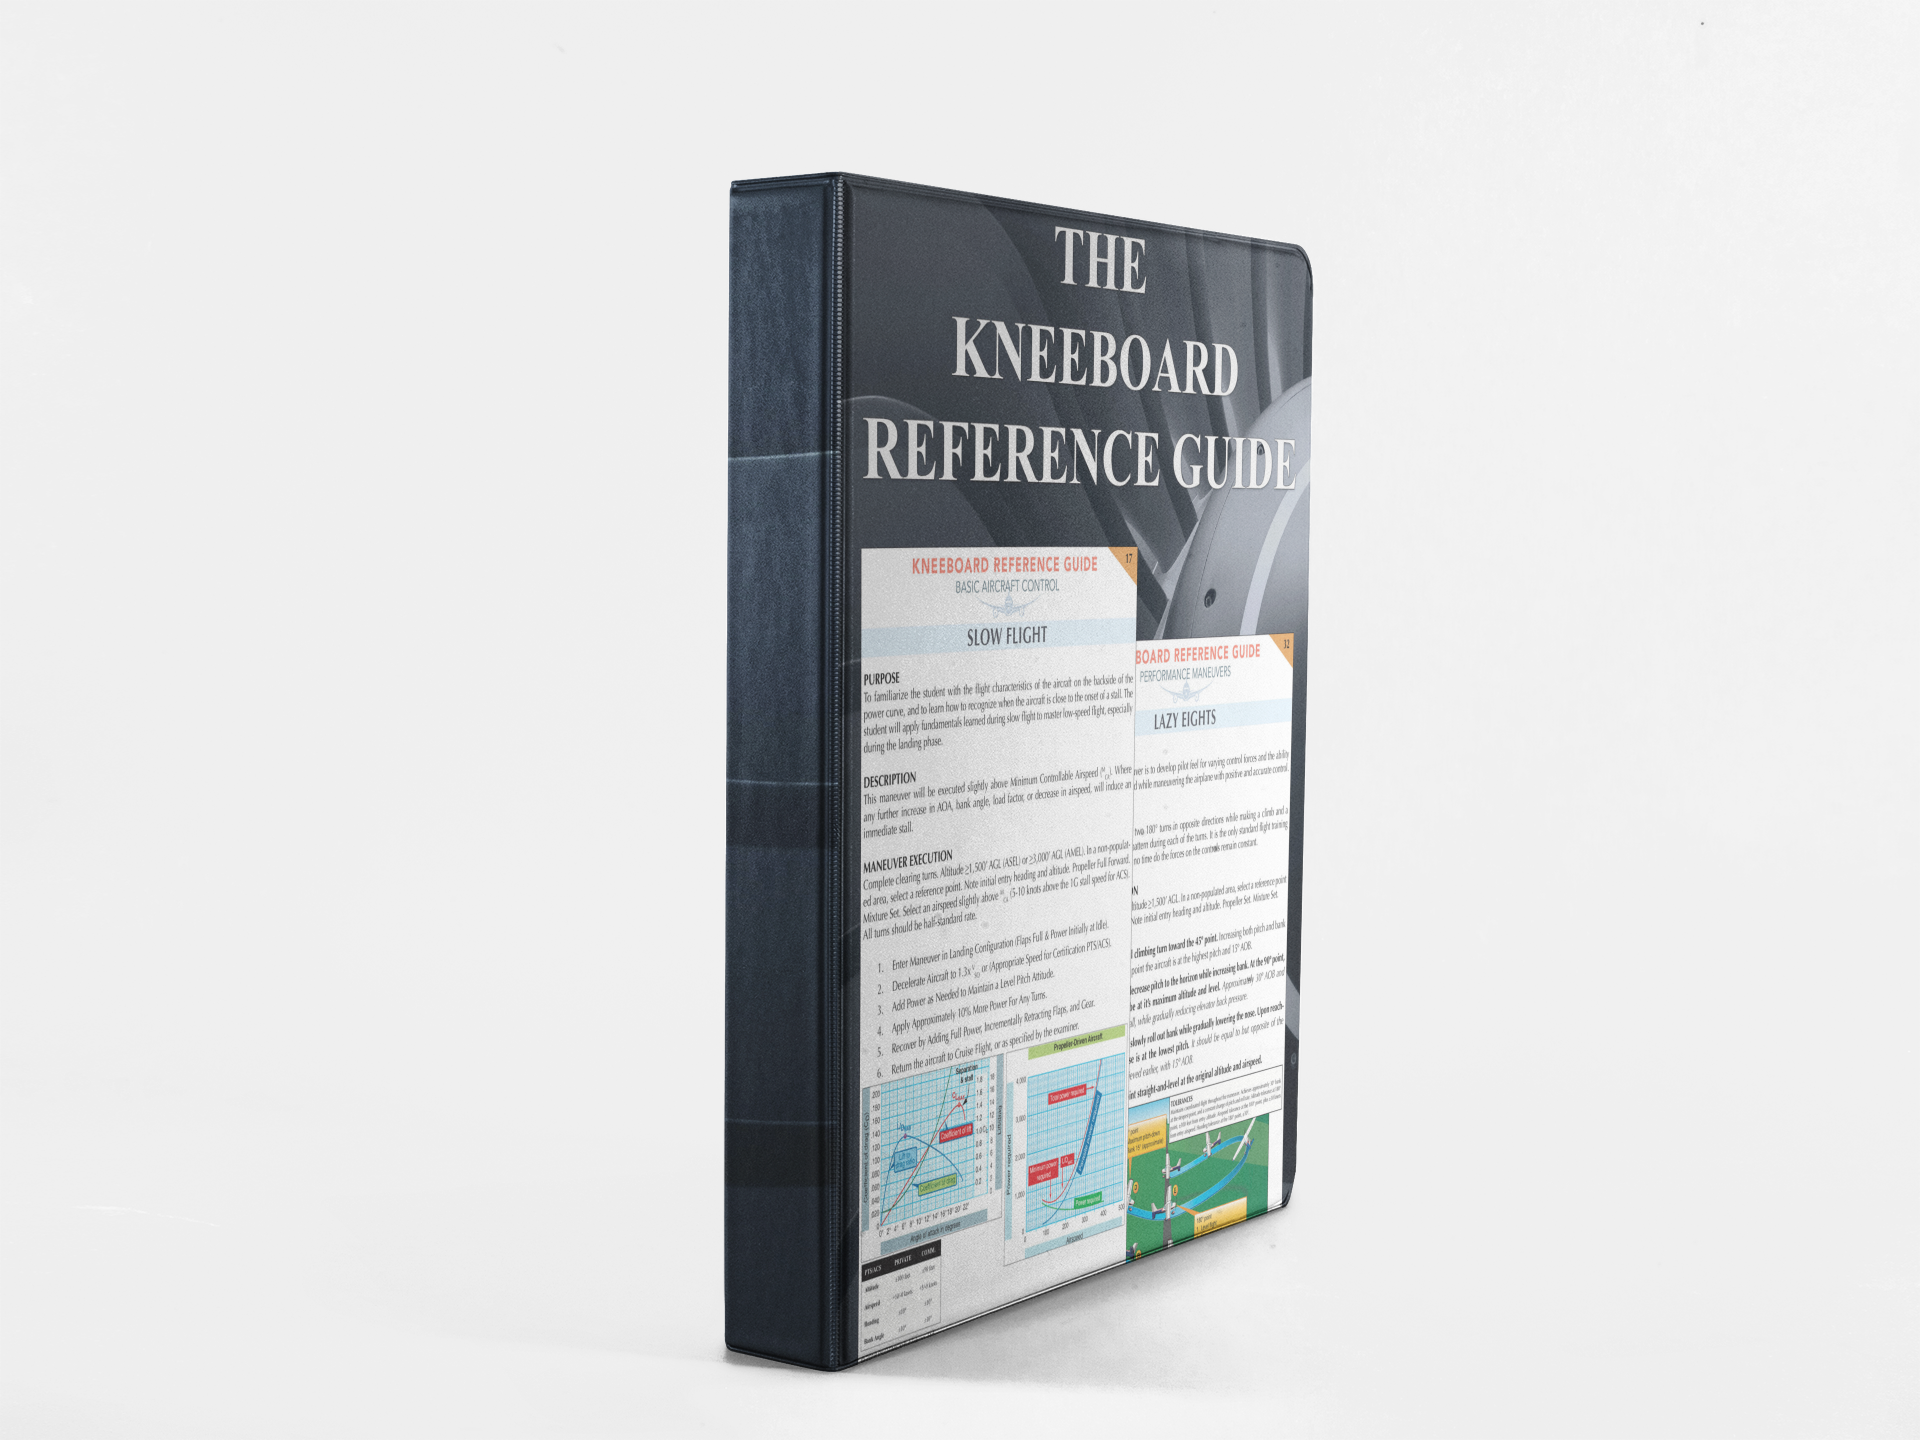 The Kneeboard Reference Guide